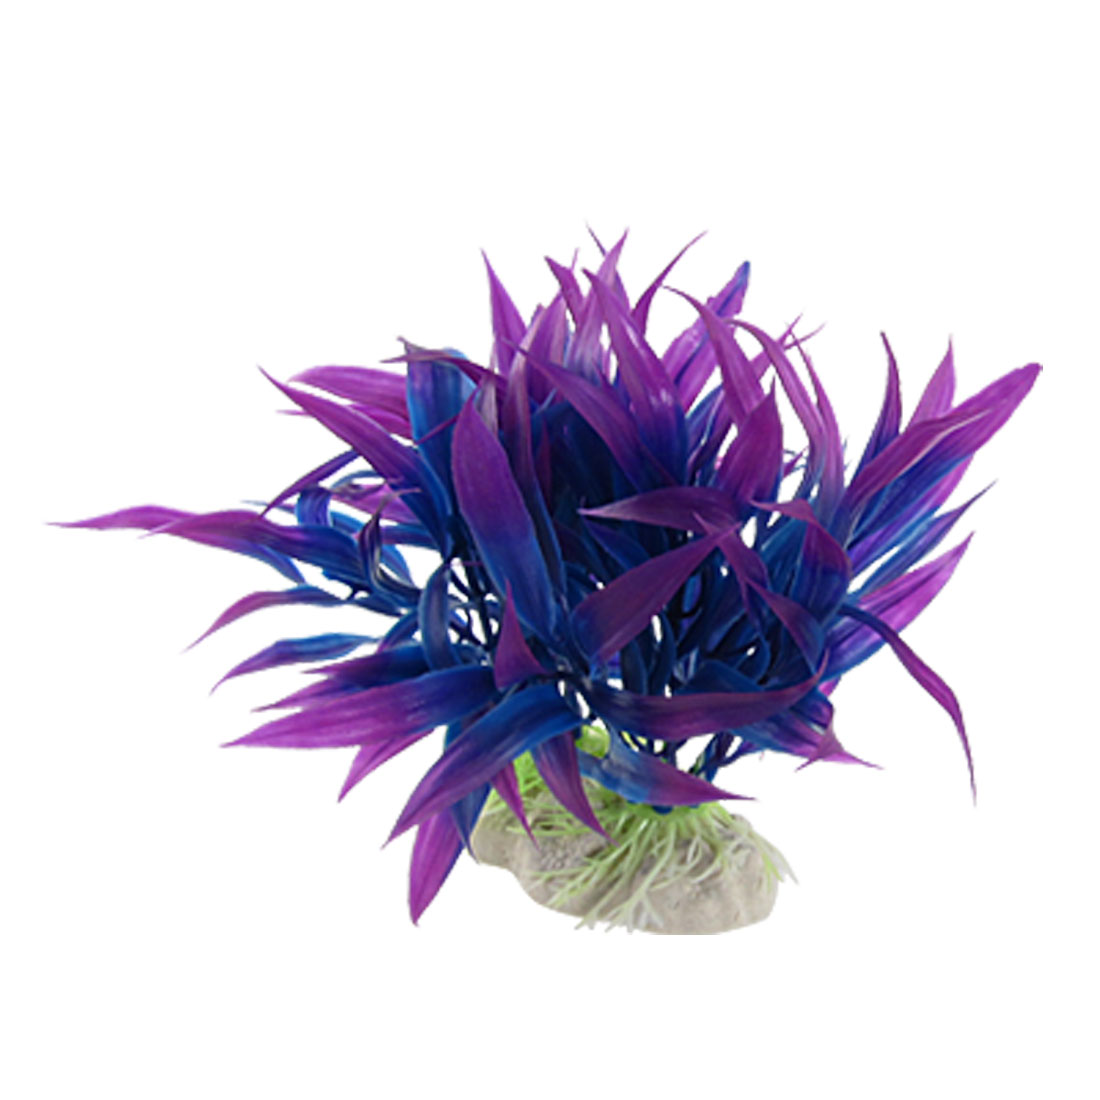 Aquarium Decor Ceramic Base Plastic Grass Plant Purple Blue